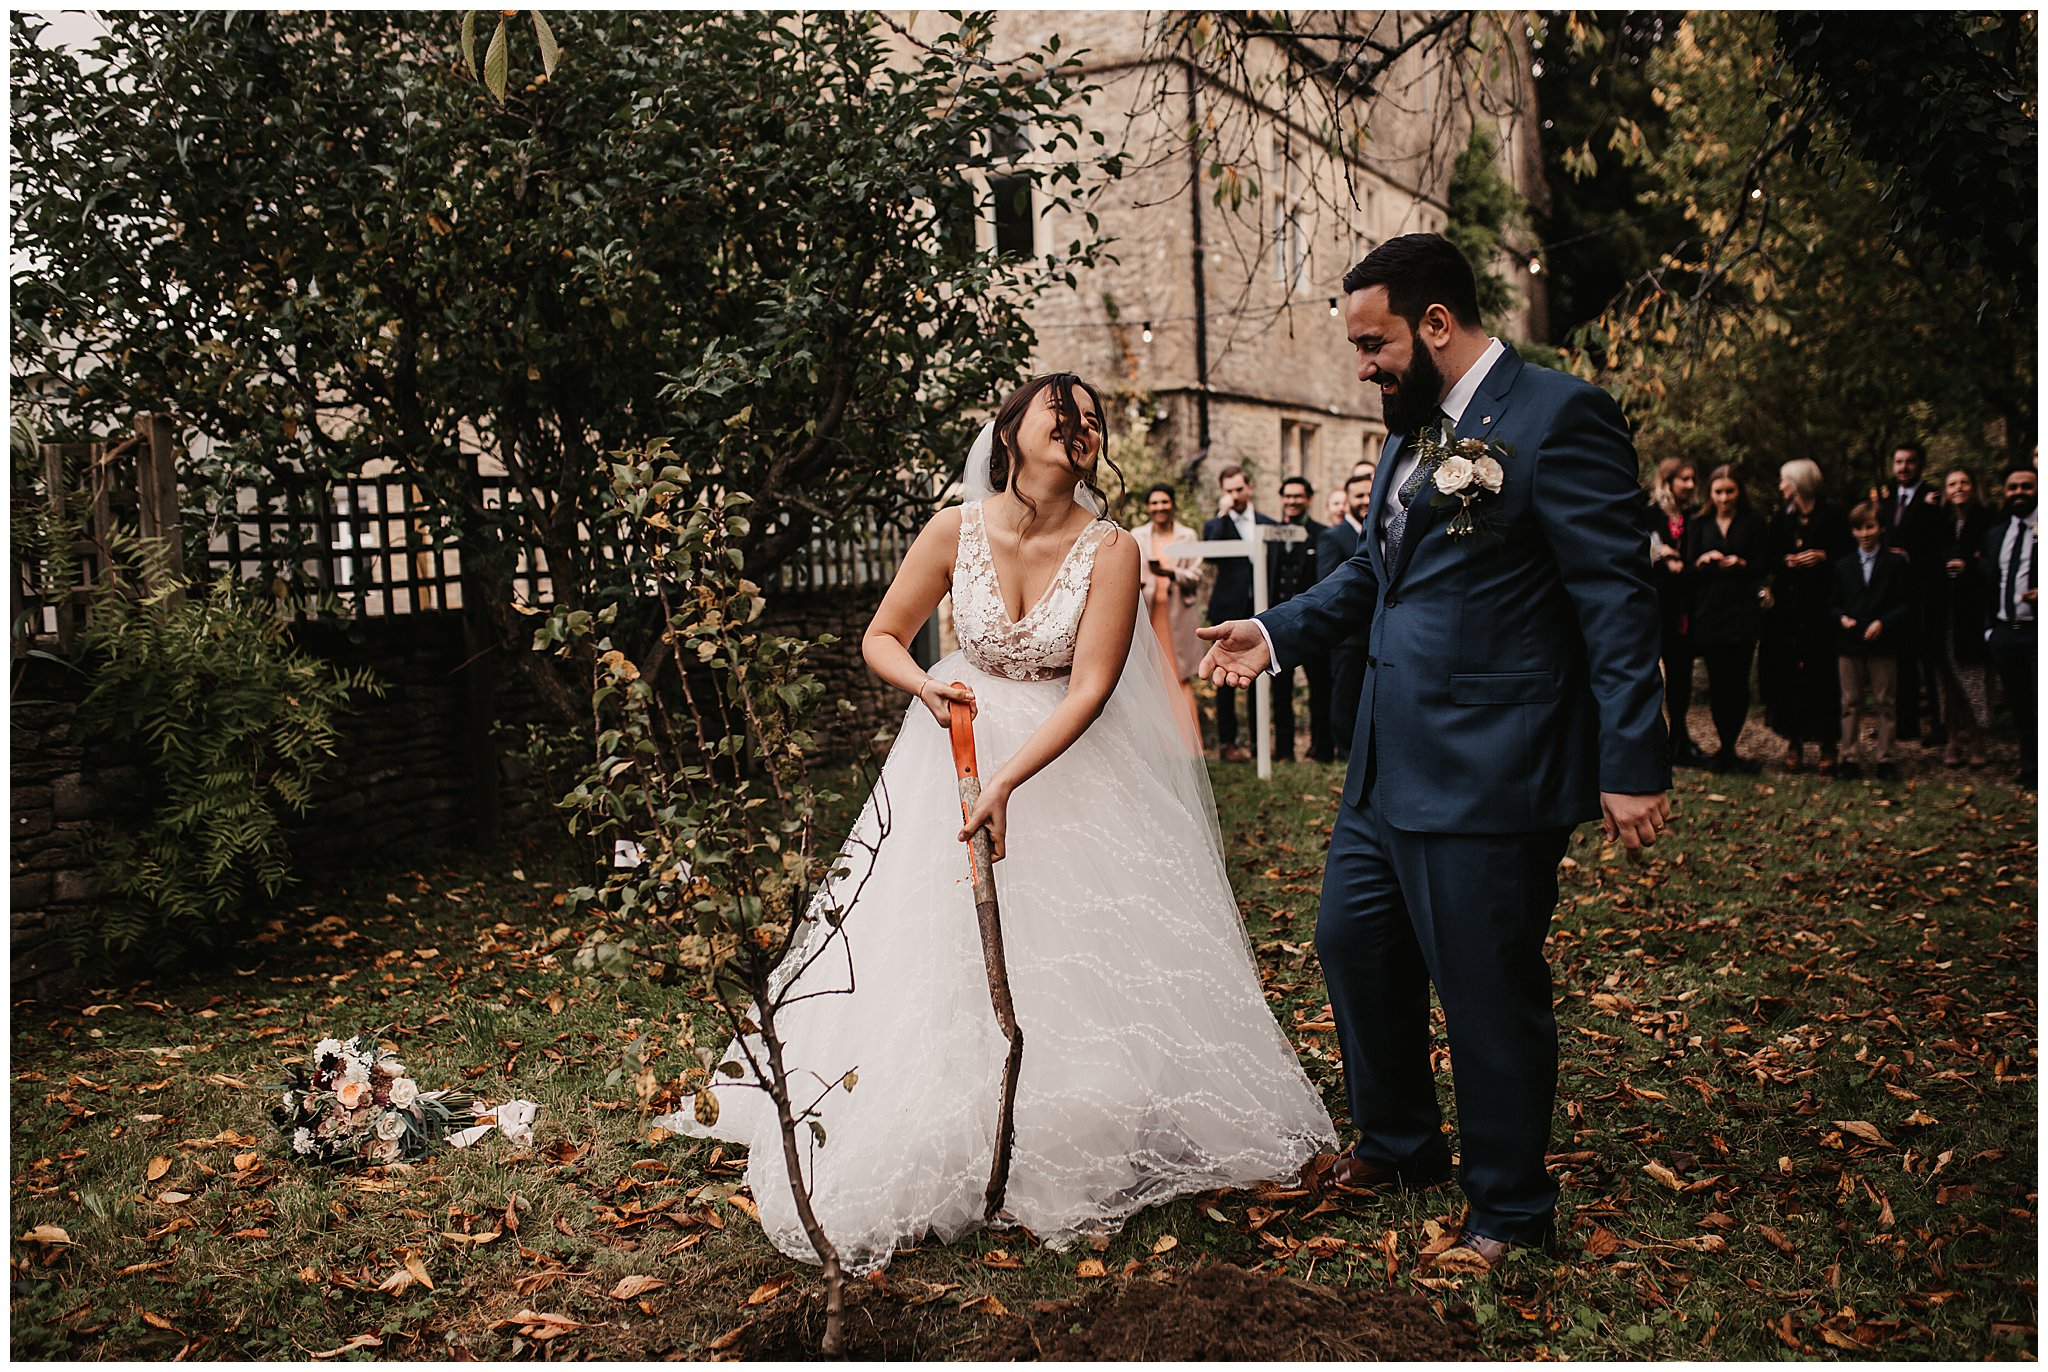 Max & Ksenia Autumnal Wiltshire Wedding-296.jpg